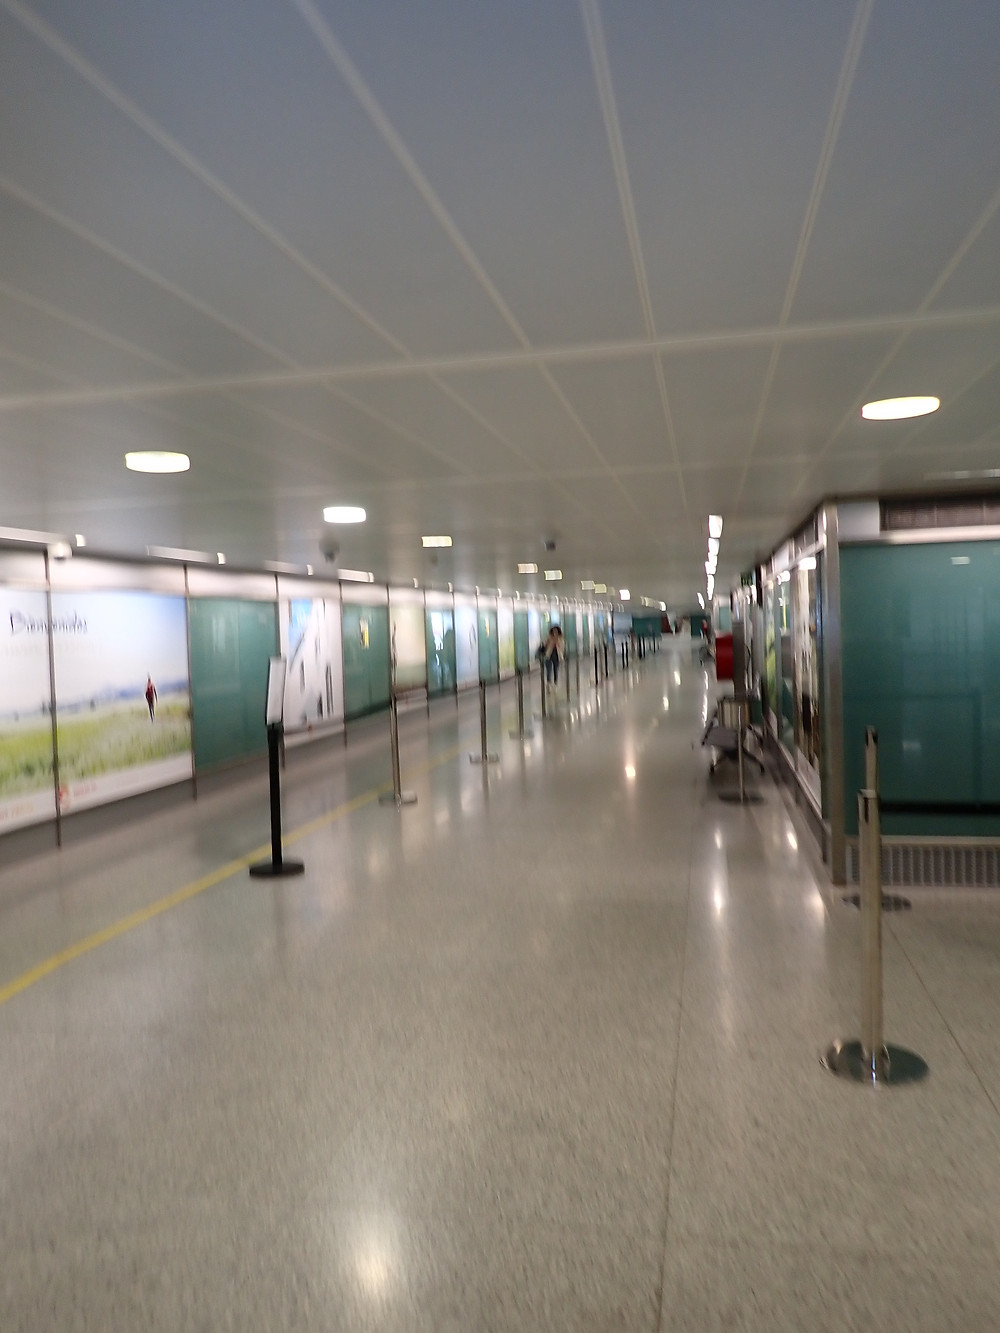 corridor at the airport with hardly anyone in it